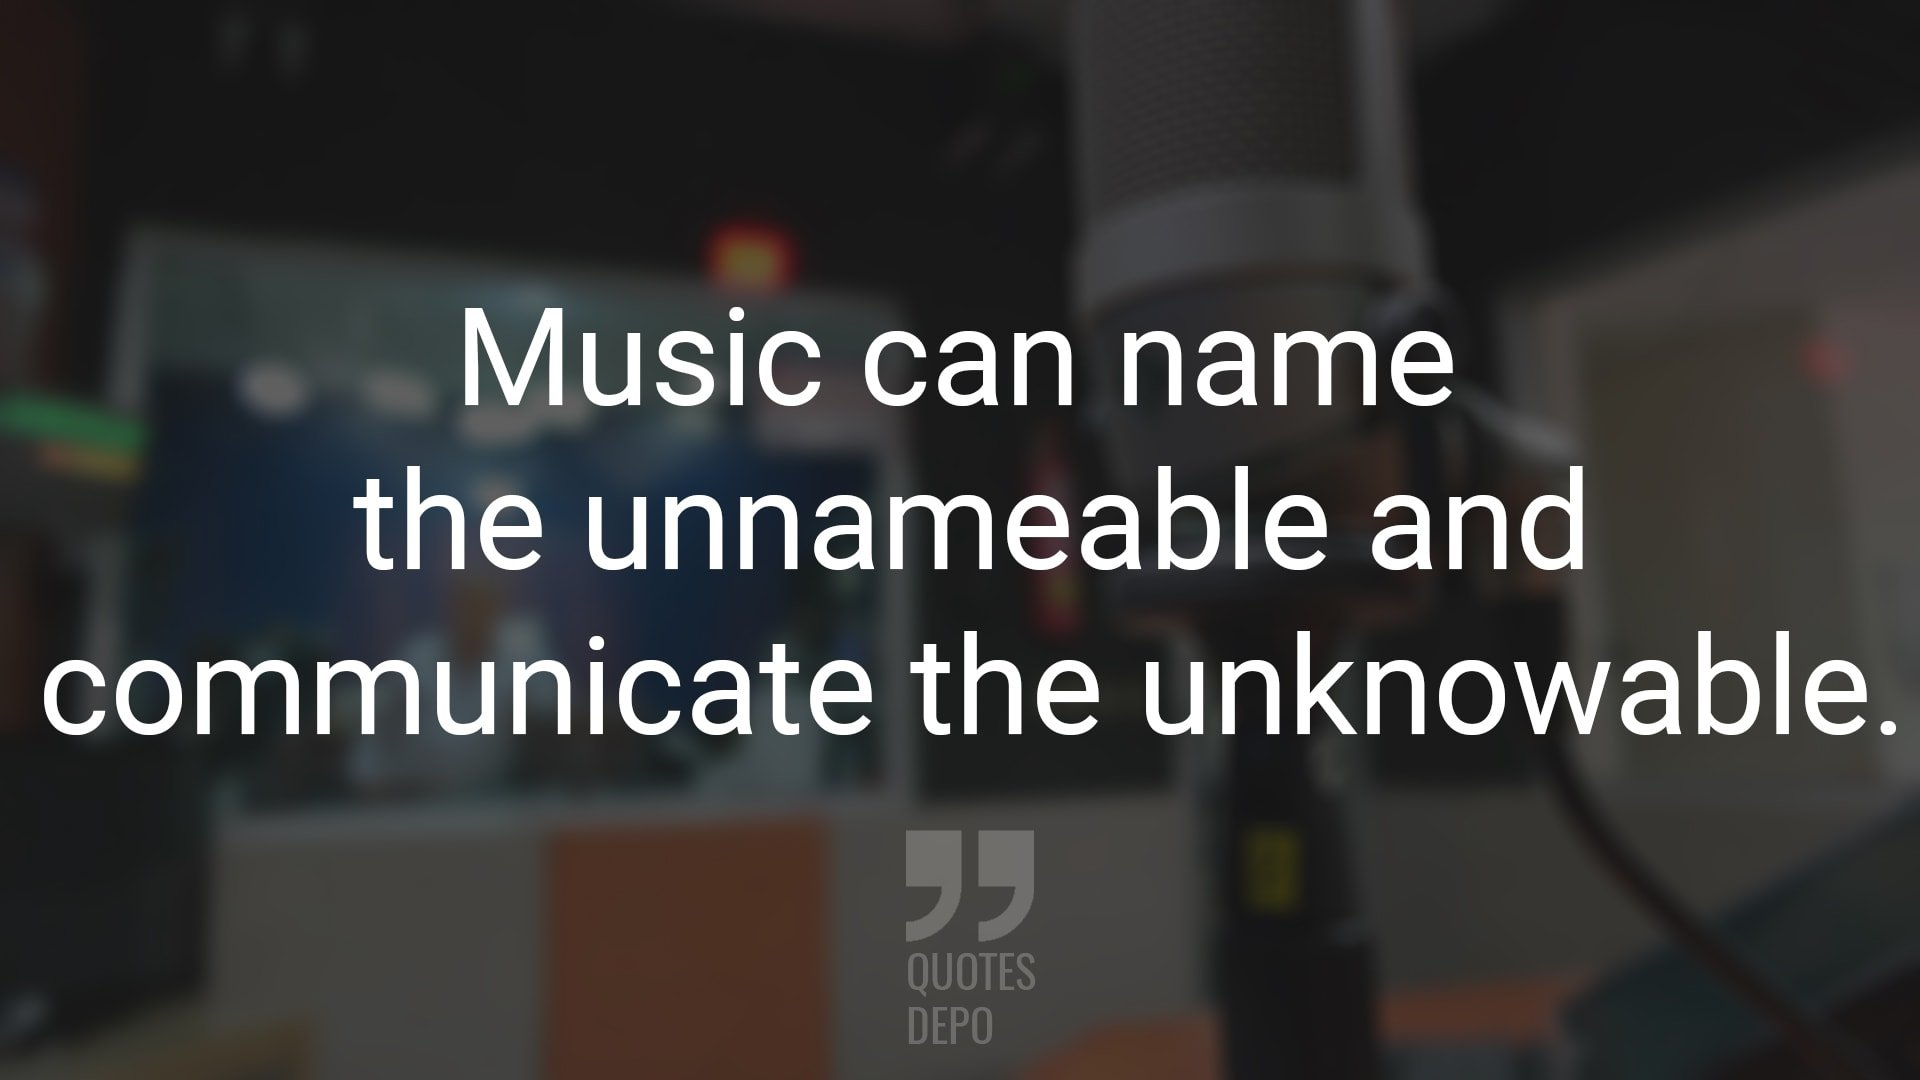 music can name the unnameable